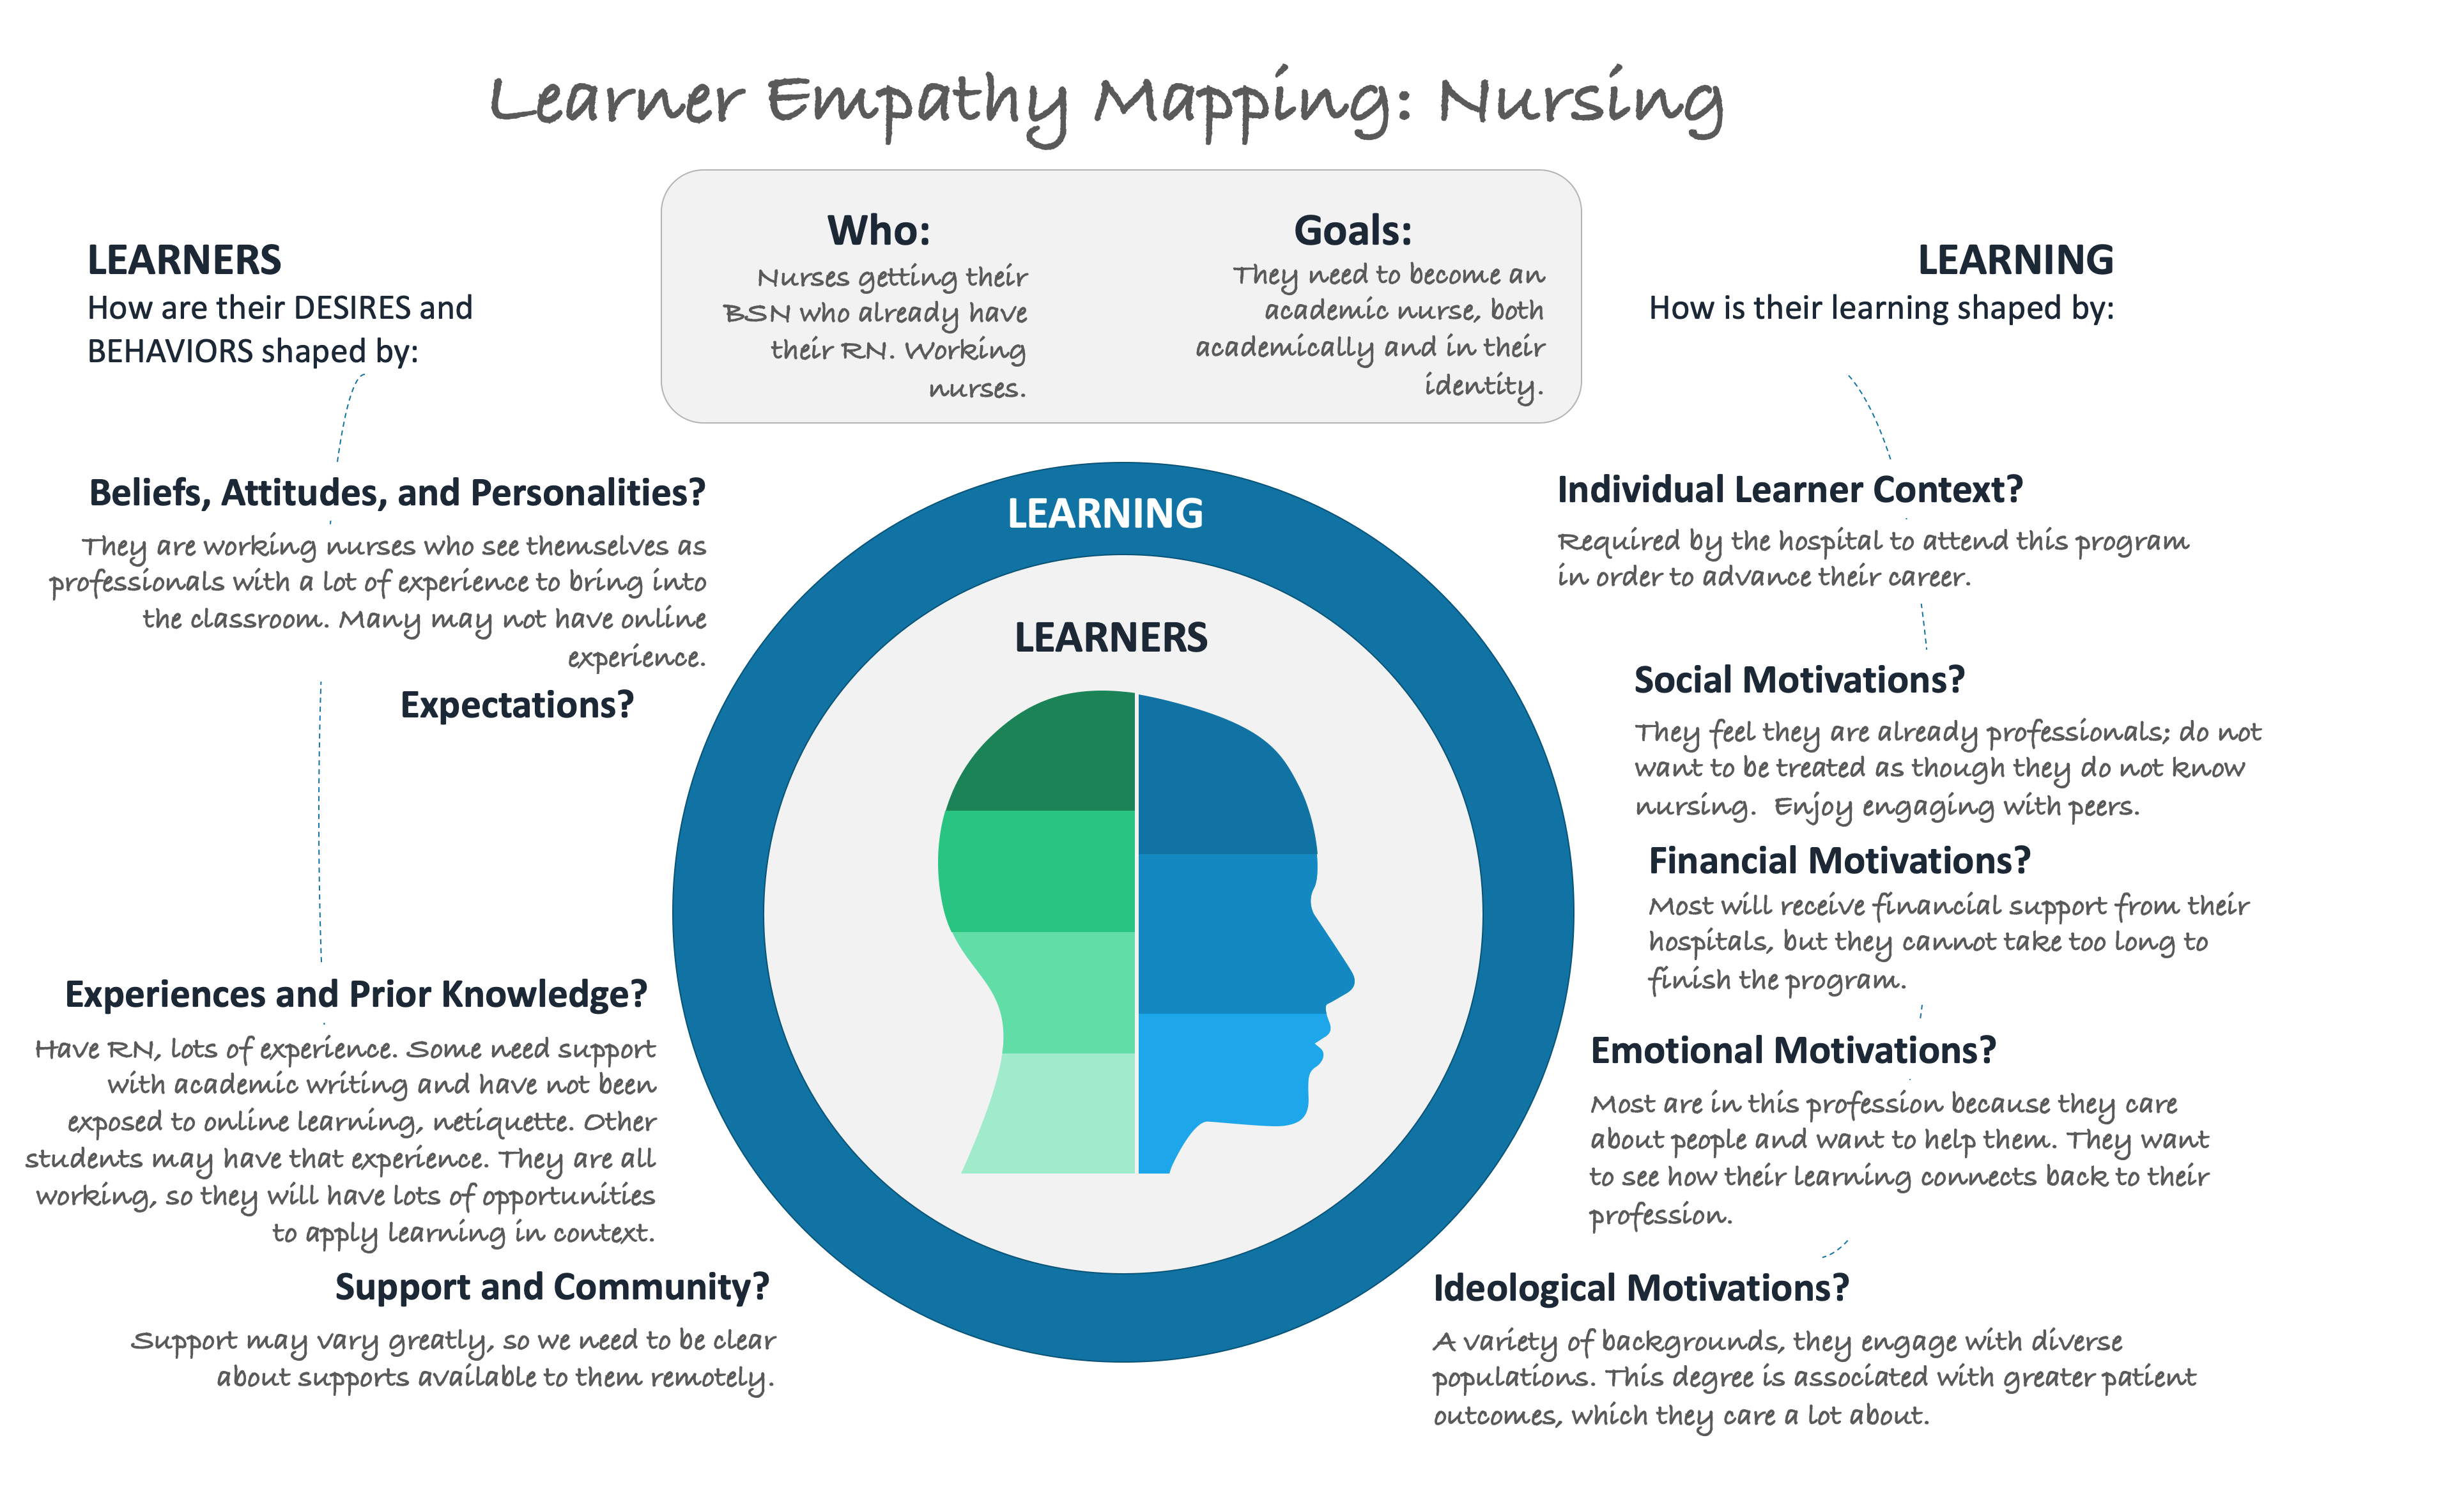 Image of an example of Learning Empathy Mapping for Nursing